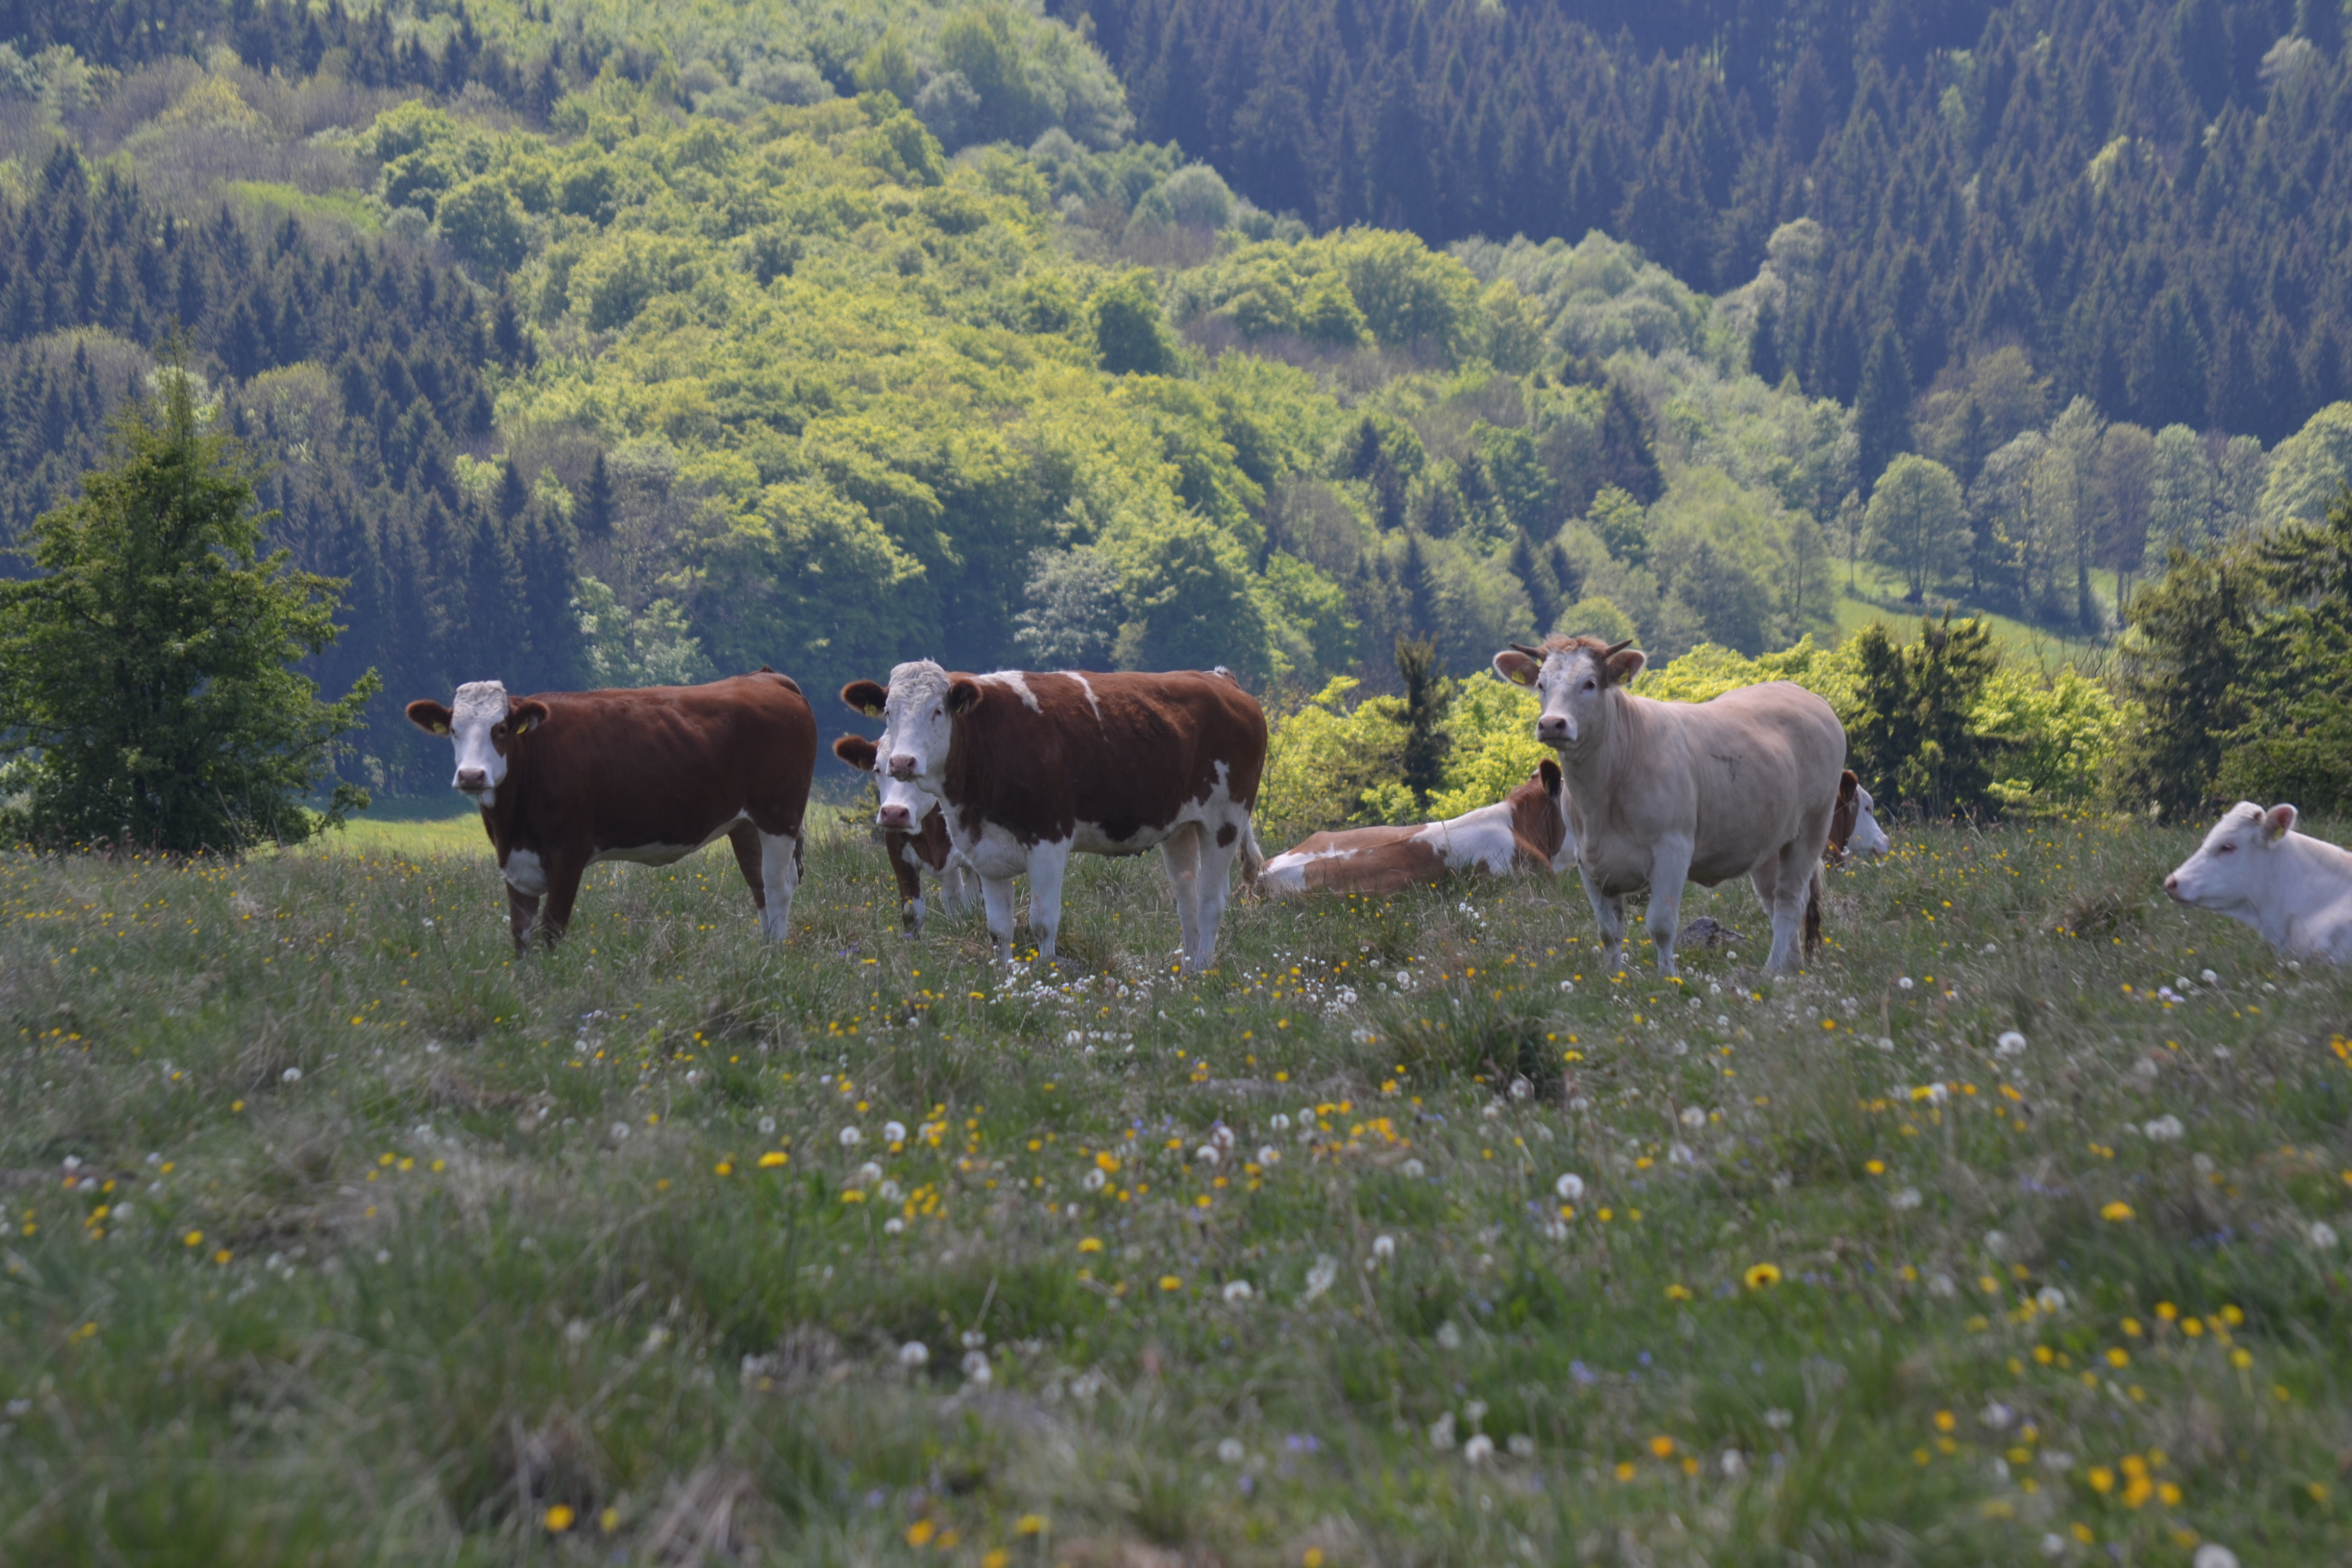 Cows in hill pasture